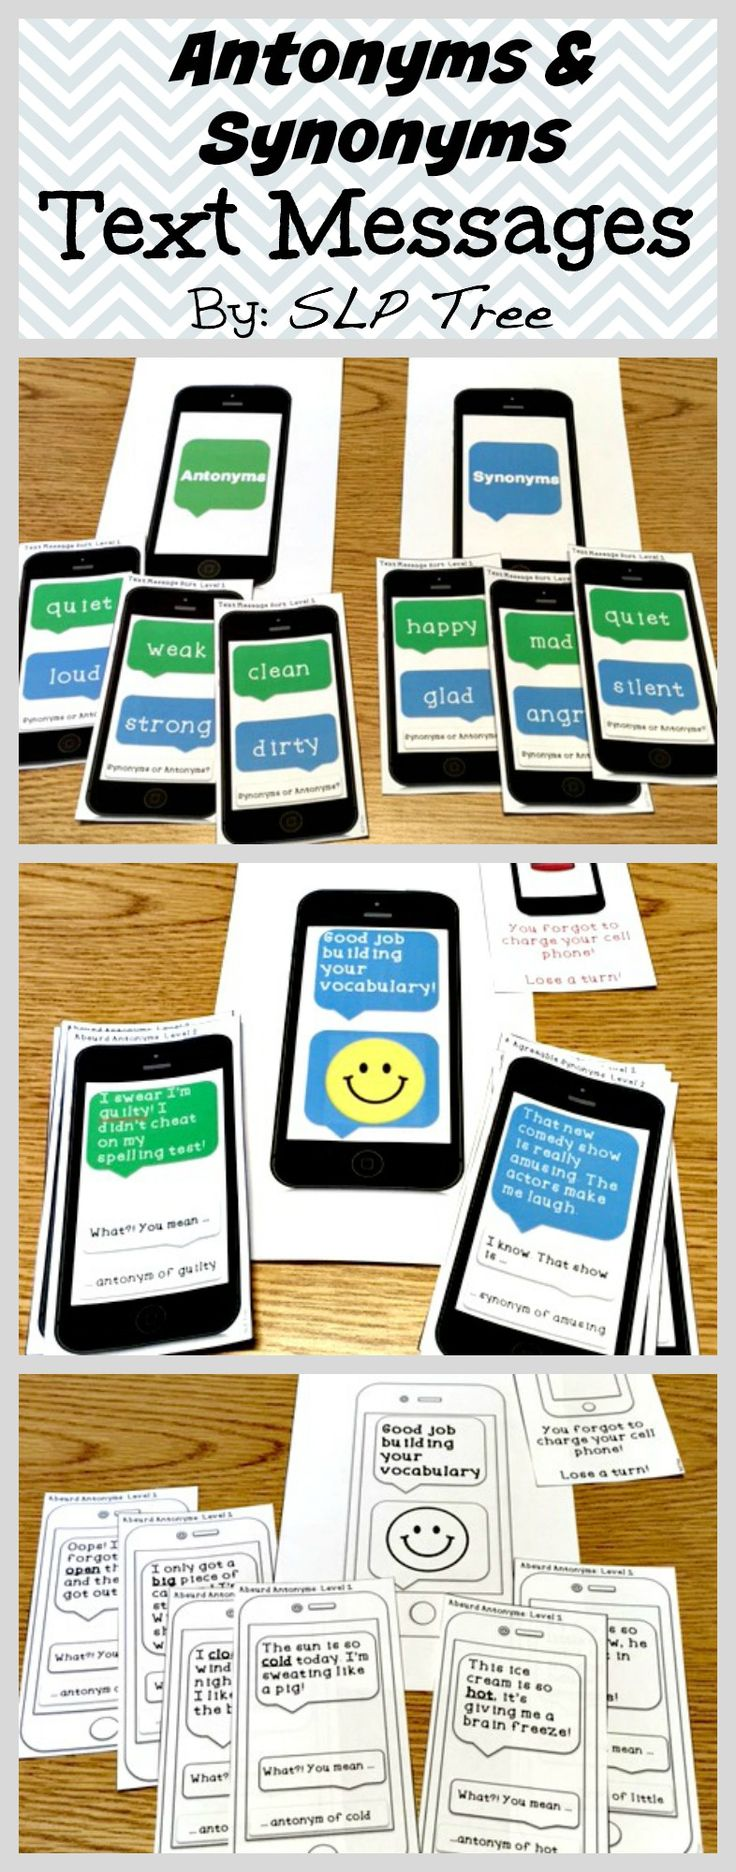 Practice receptive identification and expressive use of antonyms and synonyms by using context clues and fixing absurdities with a motivating cell phone/technology theme. The two levels of vocabulary are great for a diverse caseload and appropriate for older students working on lower level vocabulary.